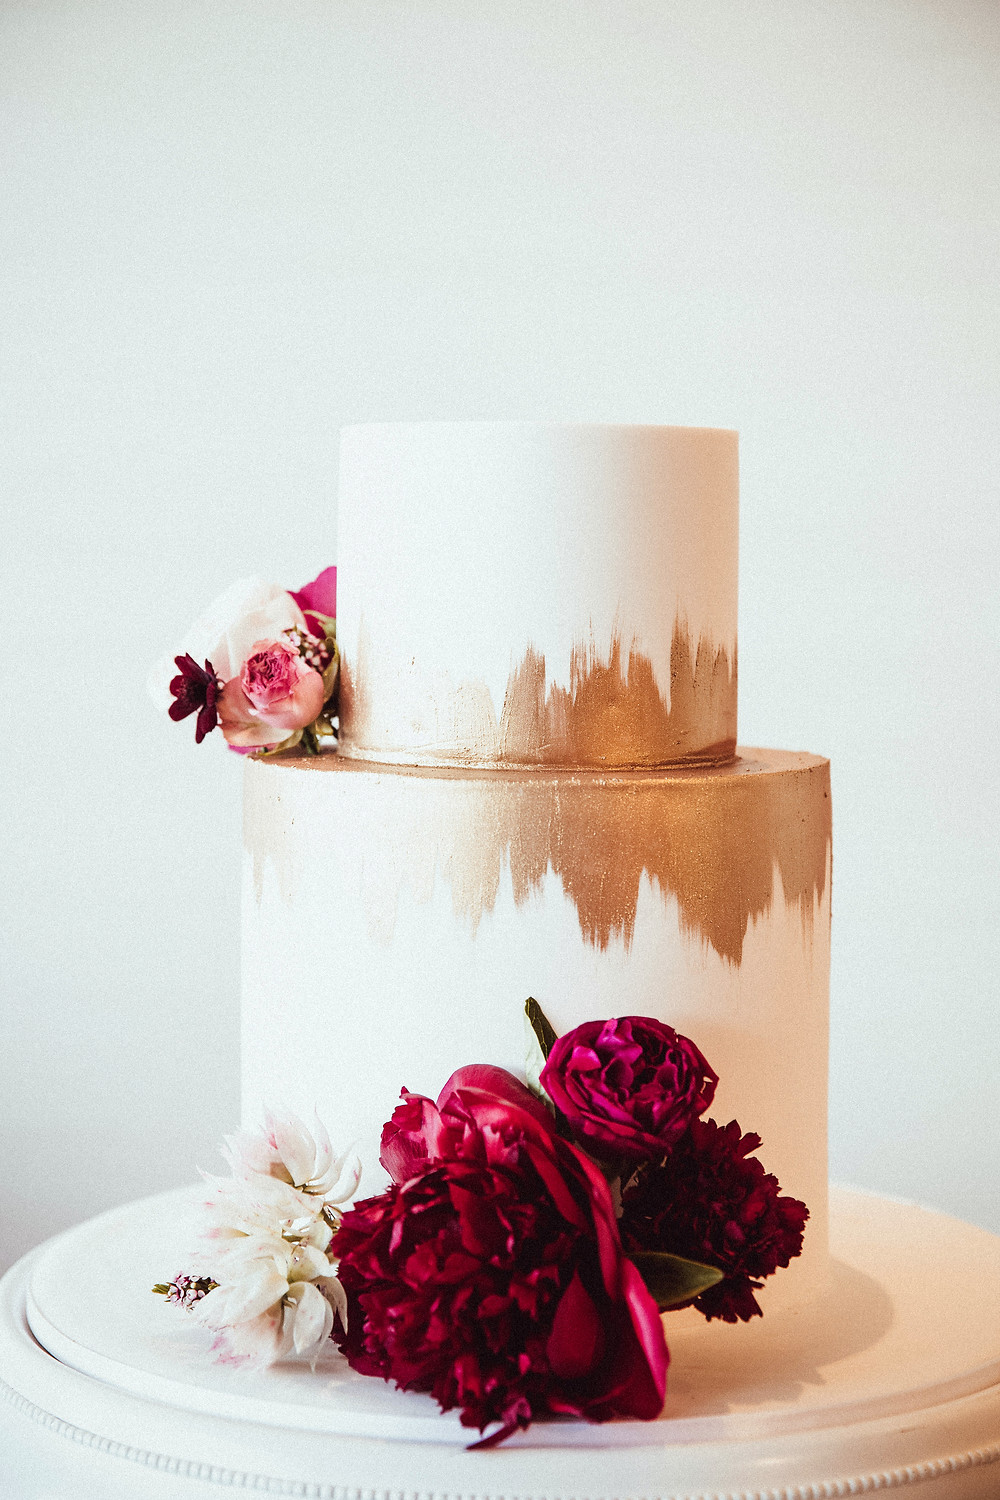 classic white and gold faye cahill wedding cake